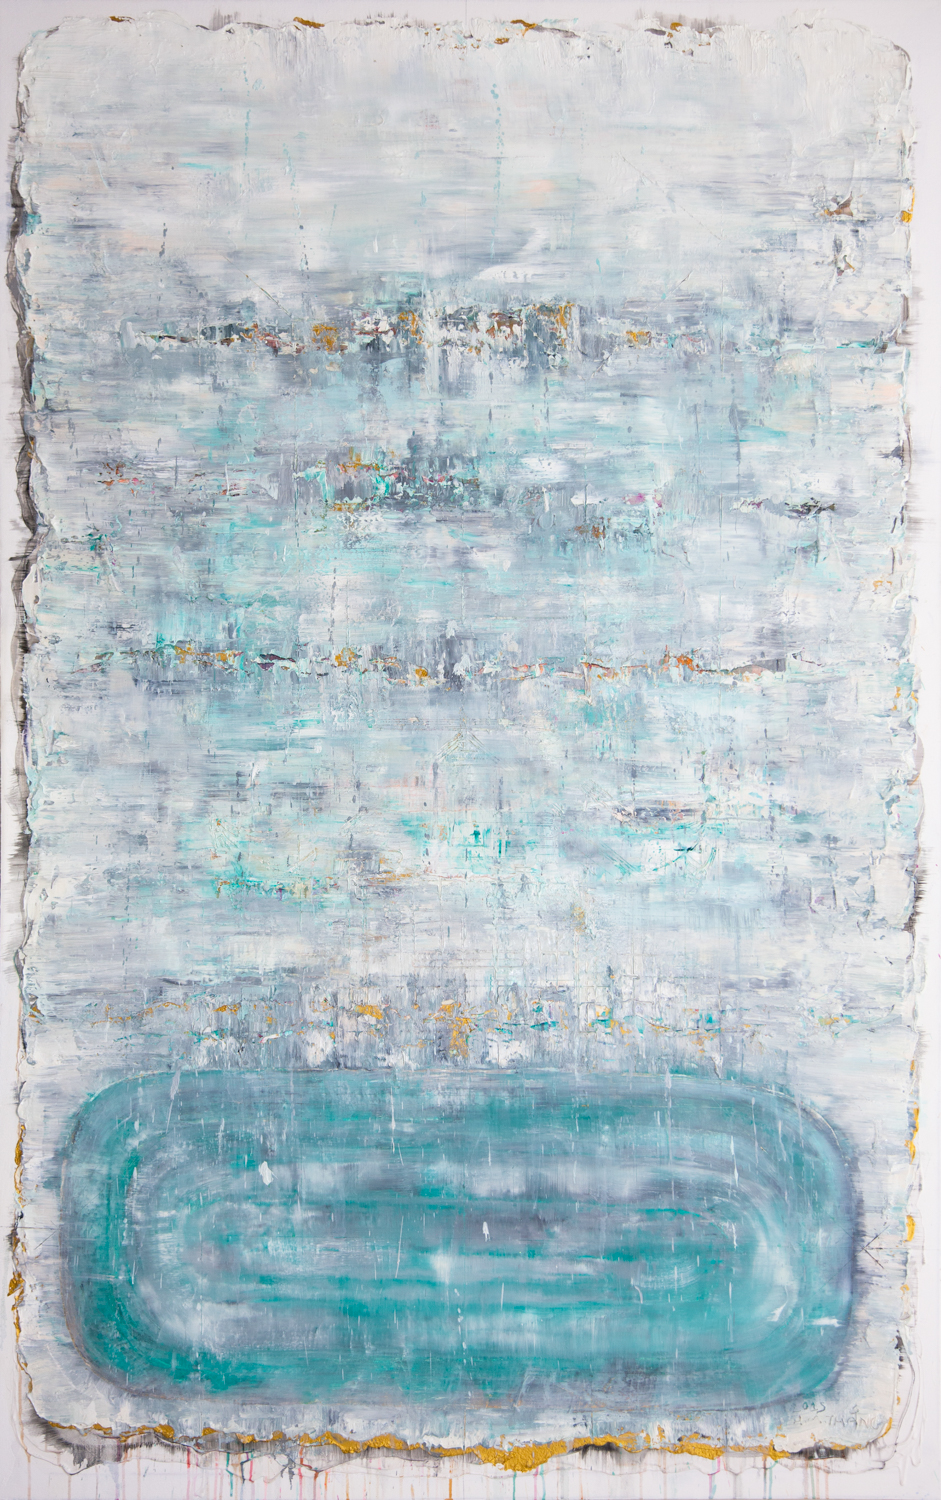 Lake At Changing Season, 2015, Mixed Media on Canvas, 185 x 120 cm, HA Manh Thang